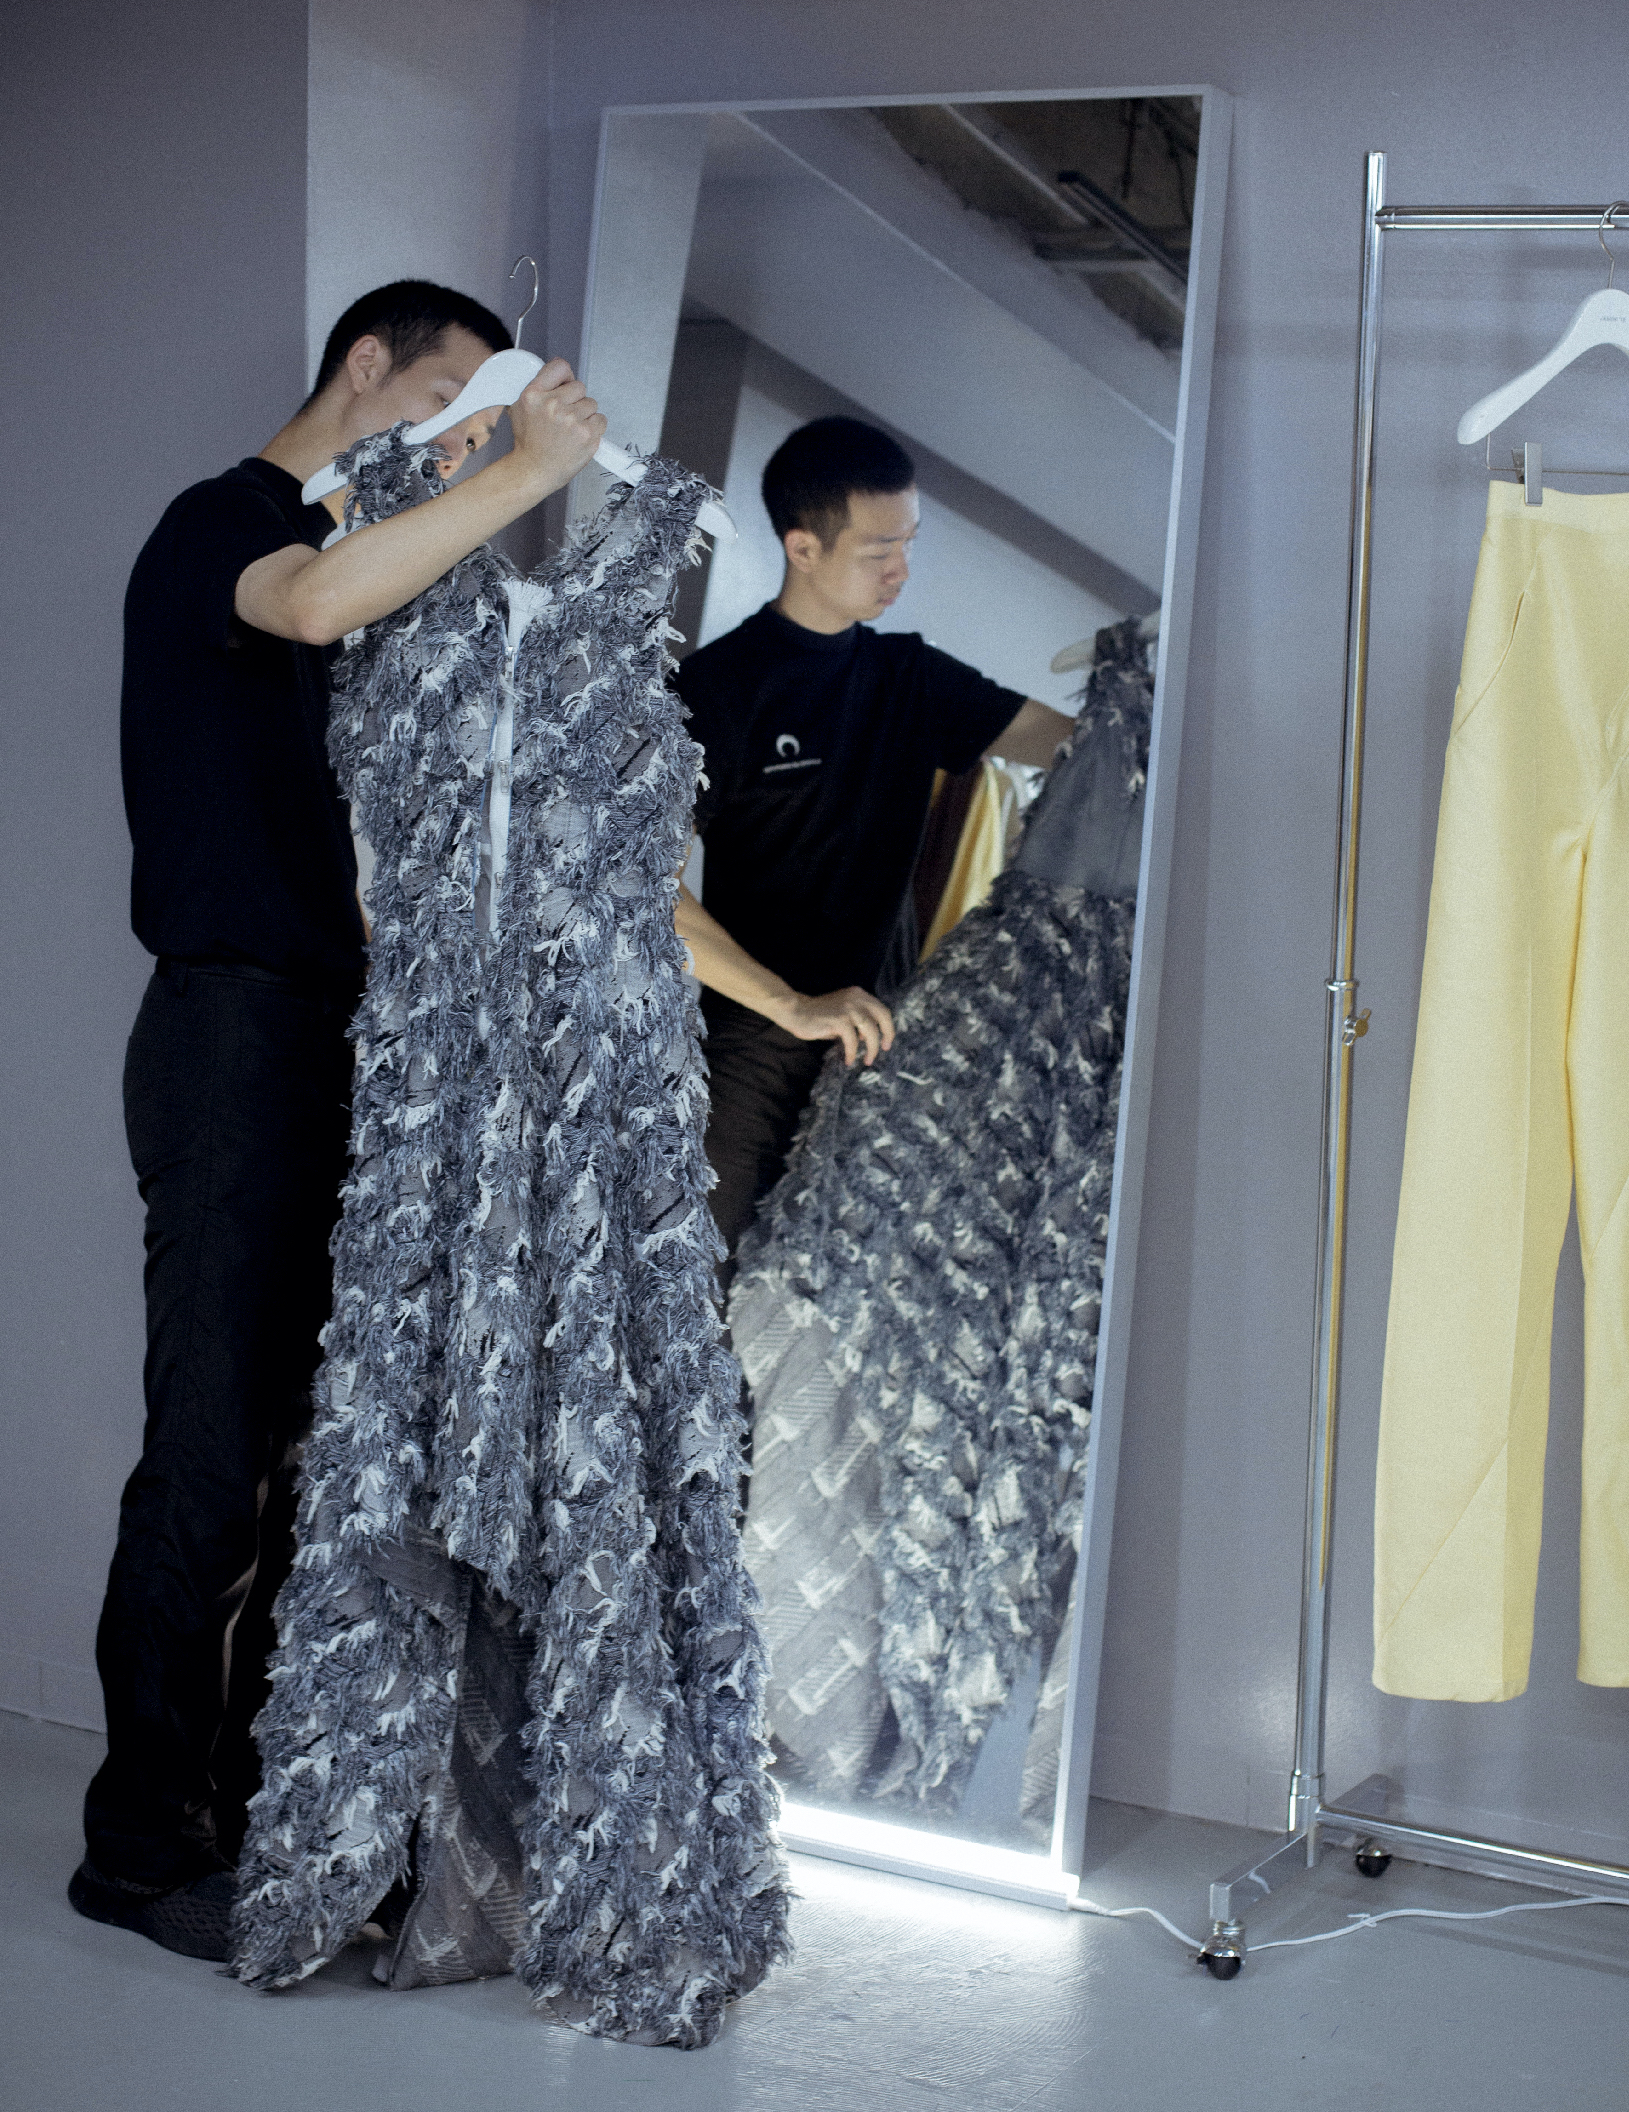 designer looking at his dress in the mirror